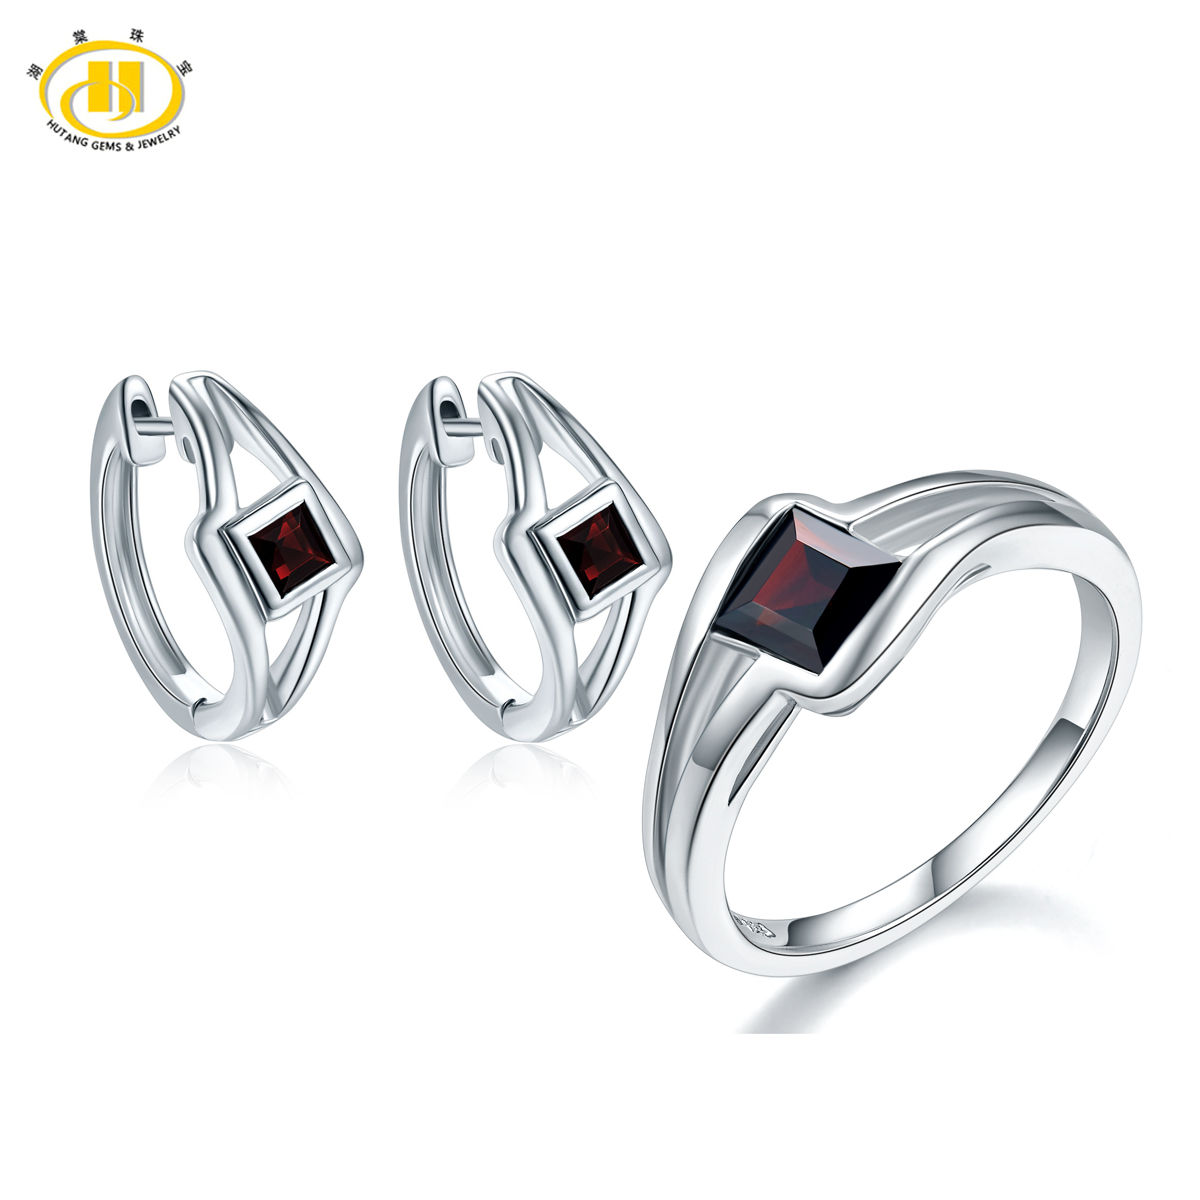 Hutang Classic Natural Garnet Jewelry Sets Solid 925 Sterling Silver Ring Earrings Gemstone Jewelry For Women Party Best Gift